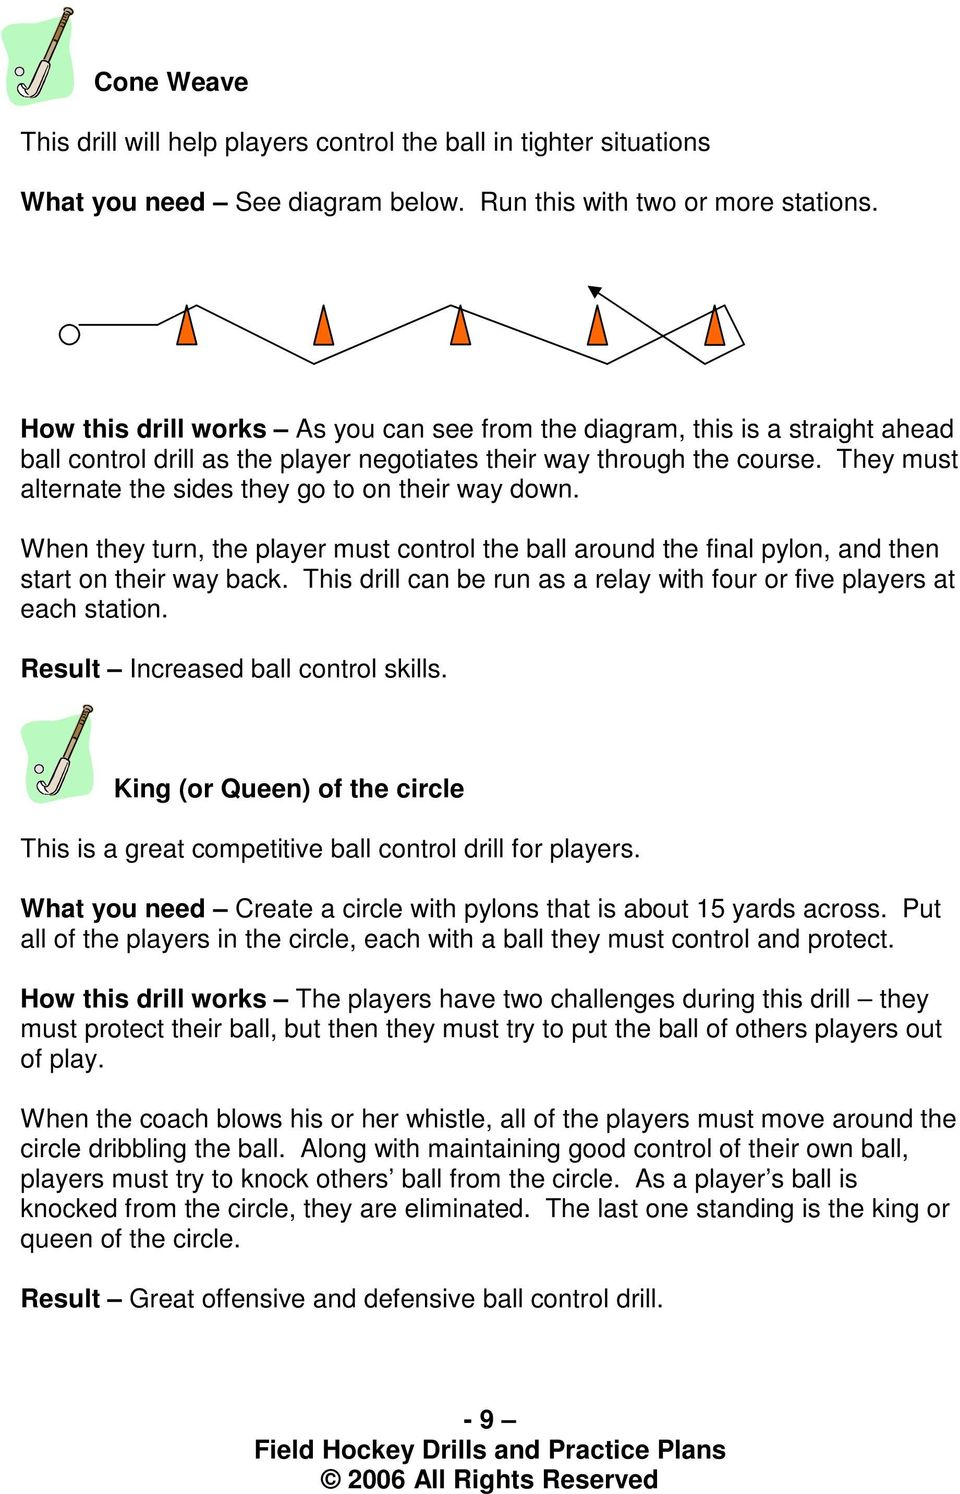 They must alternate the sides they go to on their way down. When they turn, the player must the ball around the final pylon, and then start on their way back.